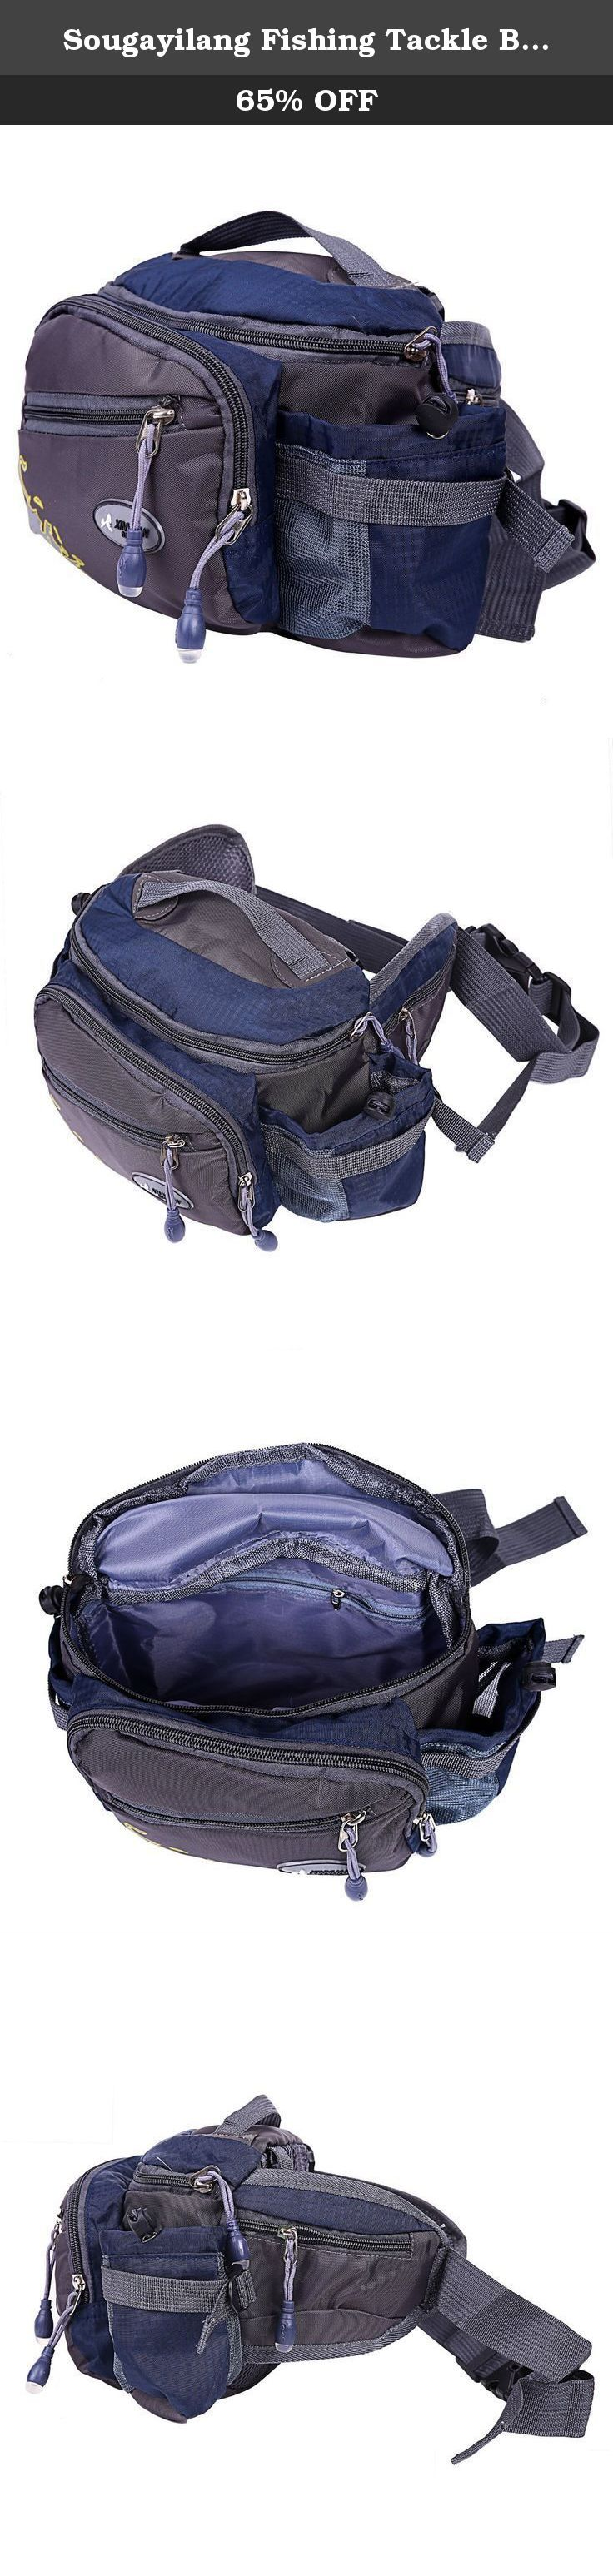 Sougayilang Fishing Tackle Bag Outdoor Waist Bags (Grey). Made of waterproof oxford cloth, good durability. Breathable mesh back, more comfortable to wear. Attached with a strap and a securing lock for wearing convenience. Well designed bag hook to connect the strap and side bag. Main compartment with zip closure. Multi-purpose usage, can hold your fishing tackles like lure pliers,fishing box, rod, etc. Package Contents: 1* Fishing Bag.